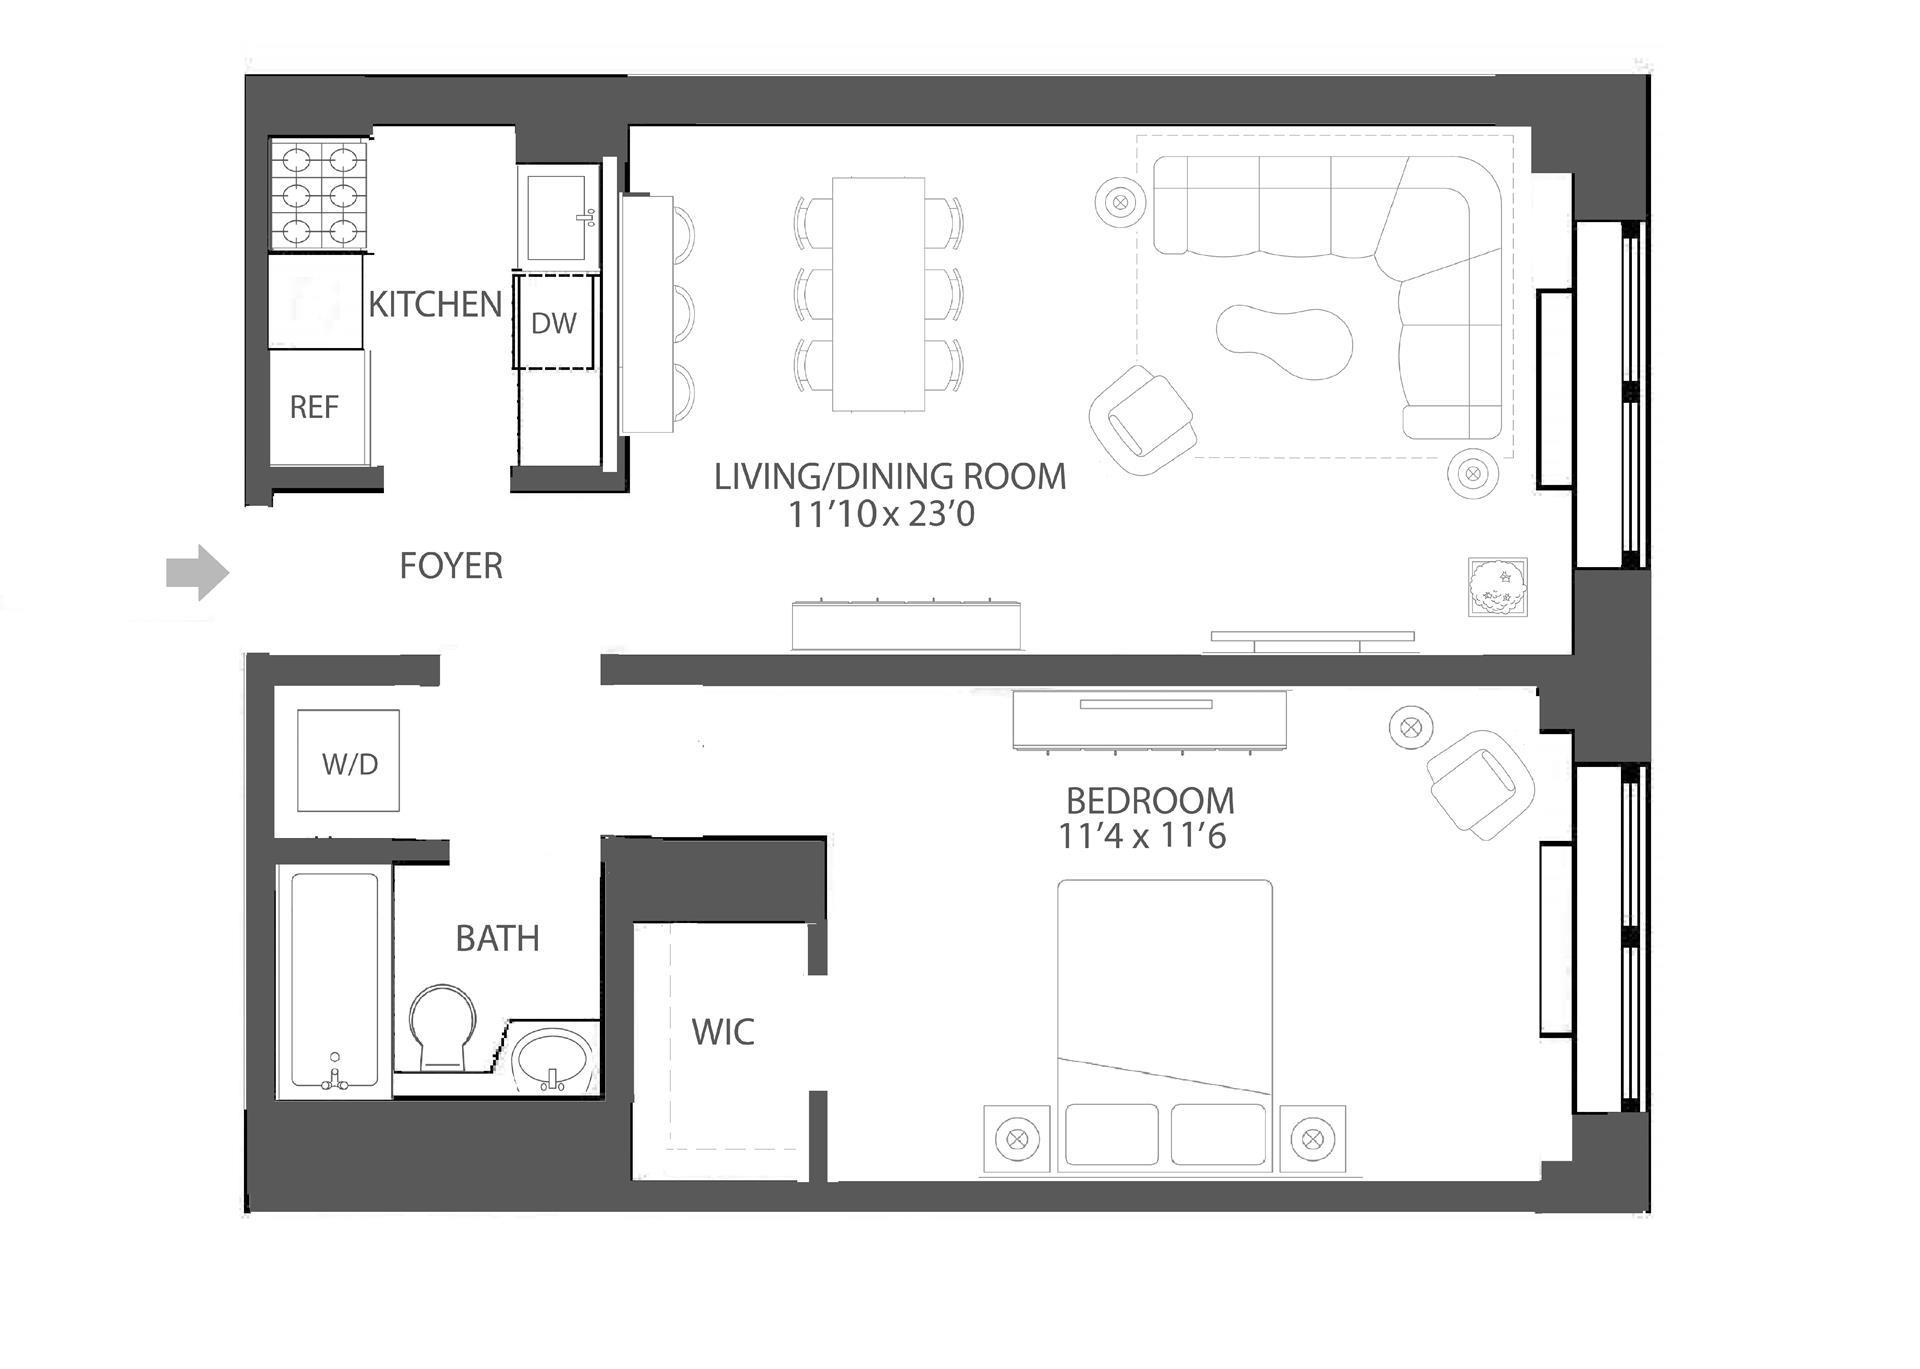 Floor plan of 120 East 87th St, R6E - Carnegie Hill, New York